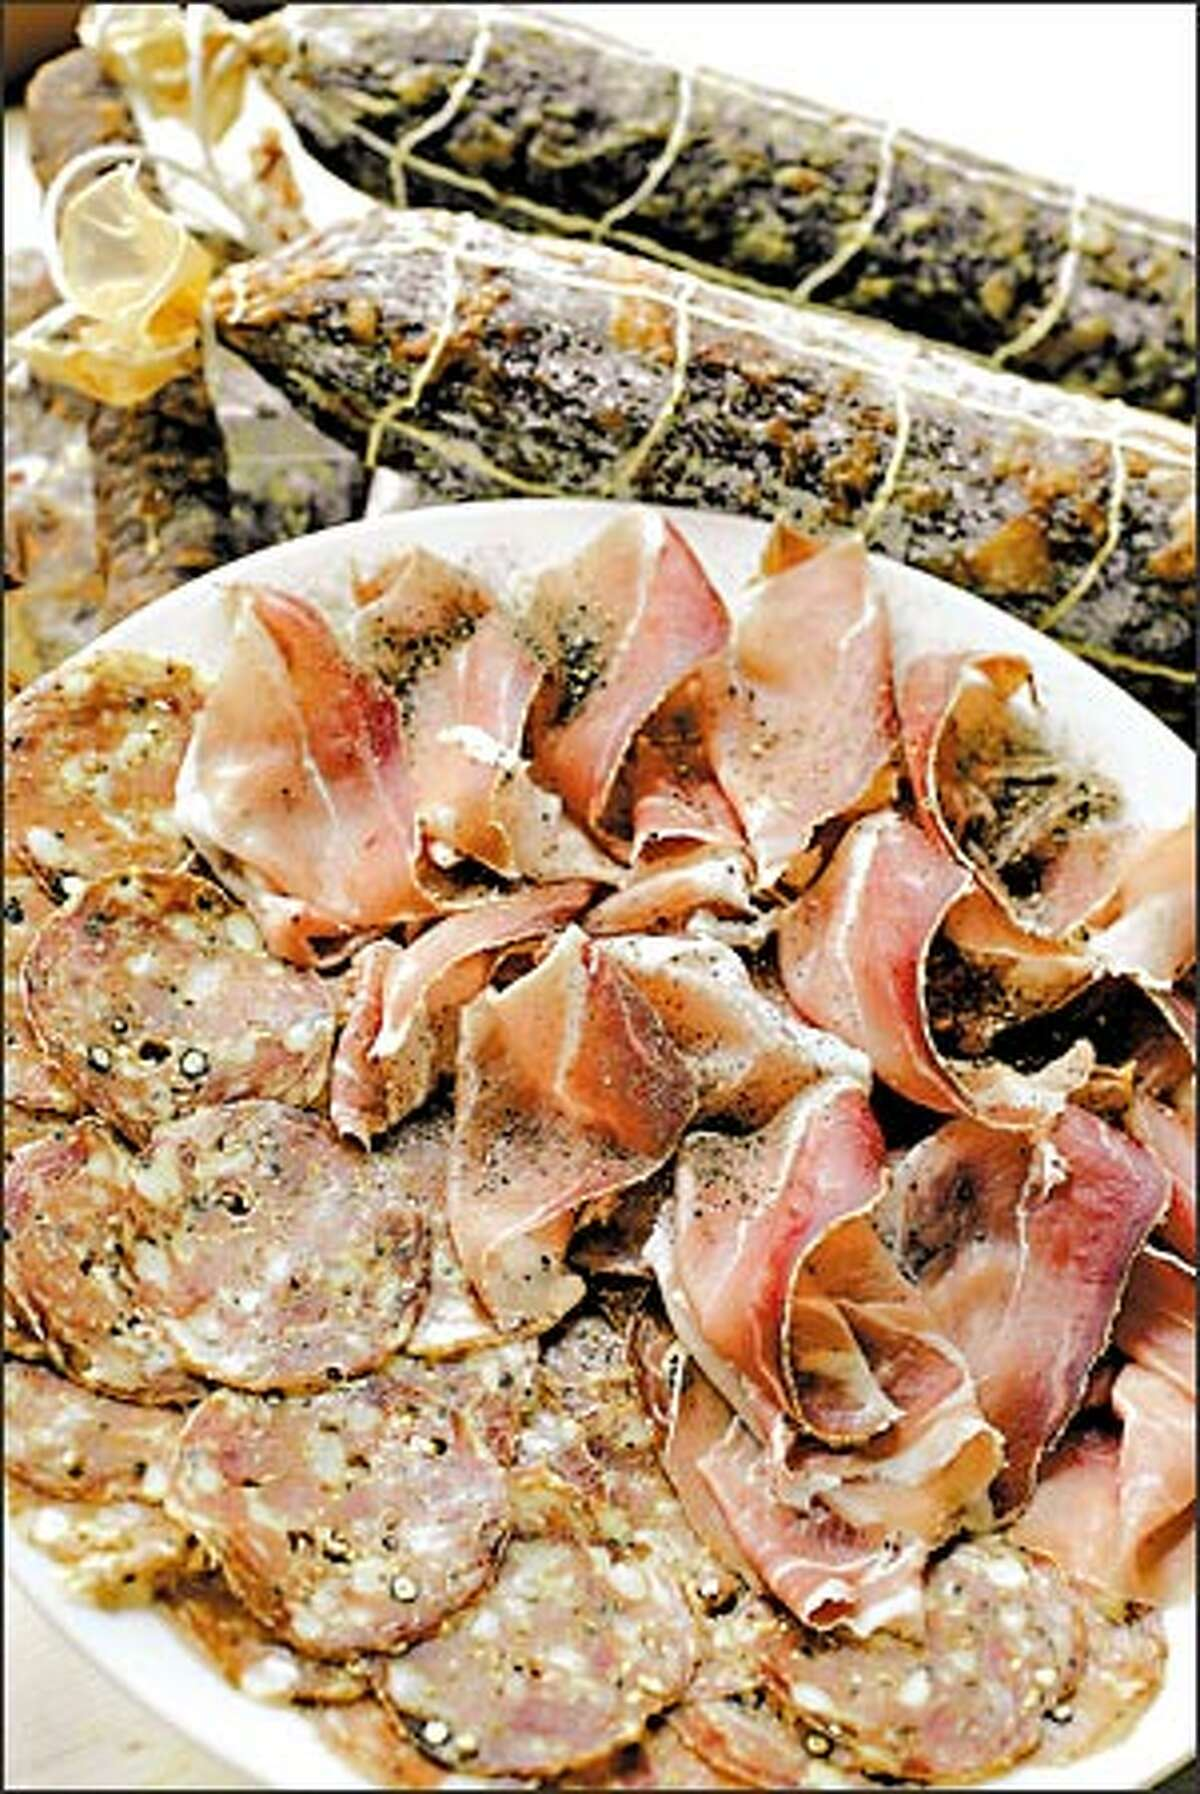 Finnocchiona and culatello are two of the 15 artisan meats available at Salumi. The meat and sandwich shop serves dinner one night a week, and is already booked through the end of the year.